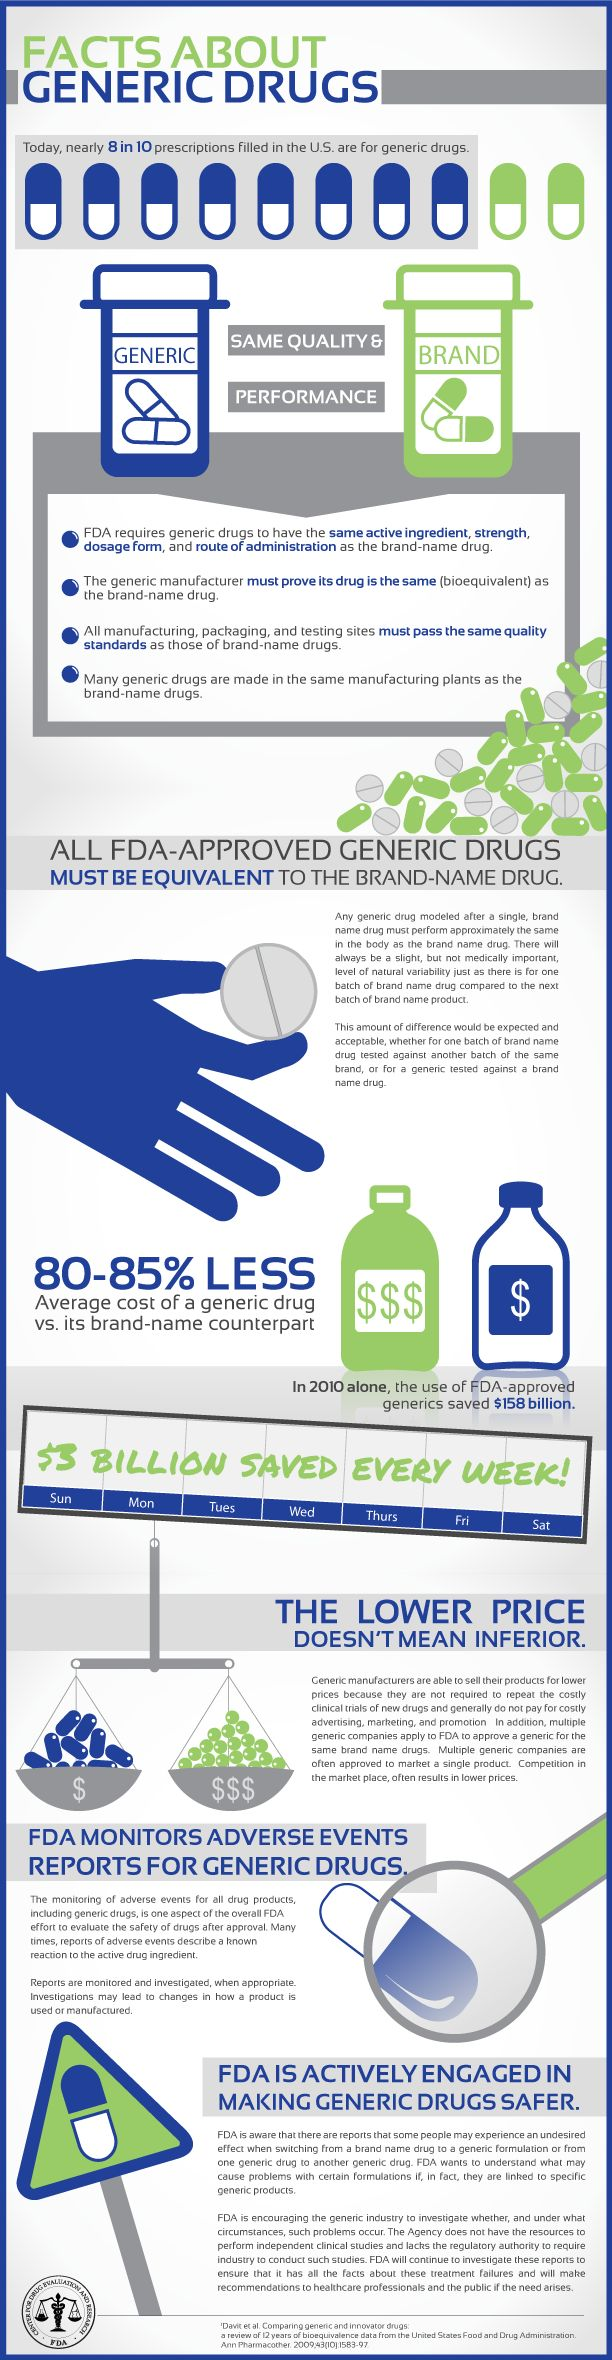 #FDA #infographic on Facts about Generic Drugs  Today #health